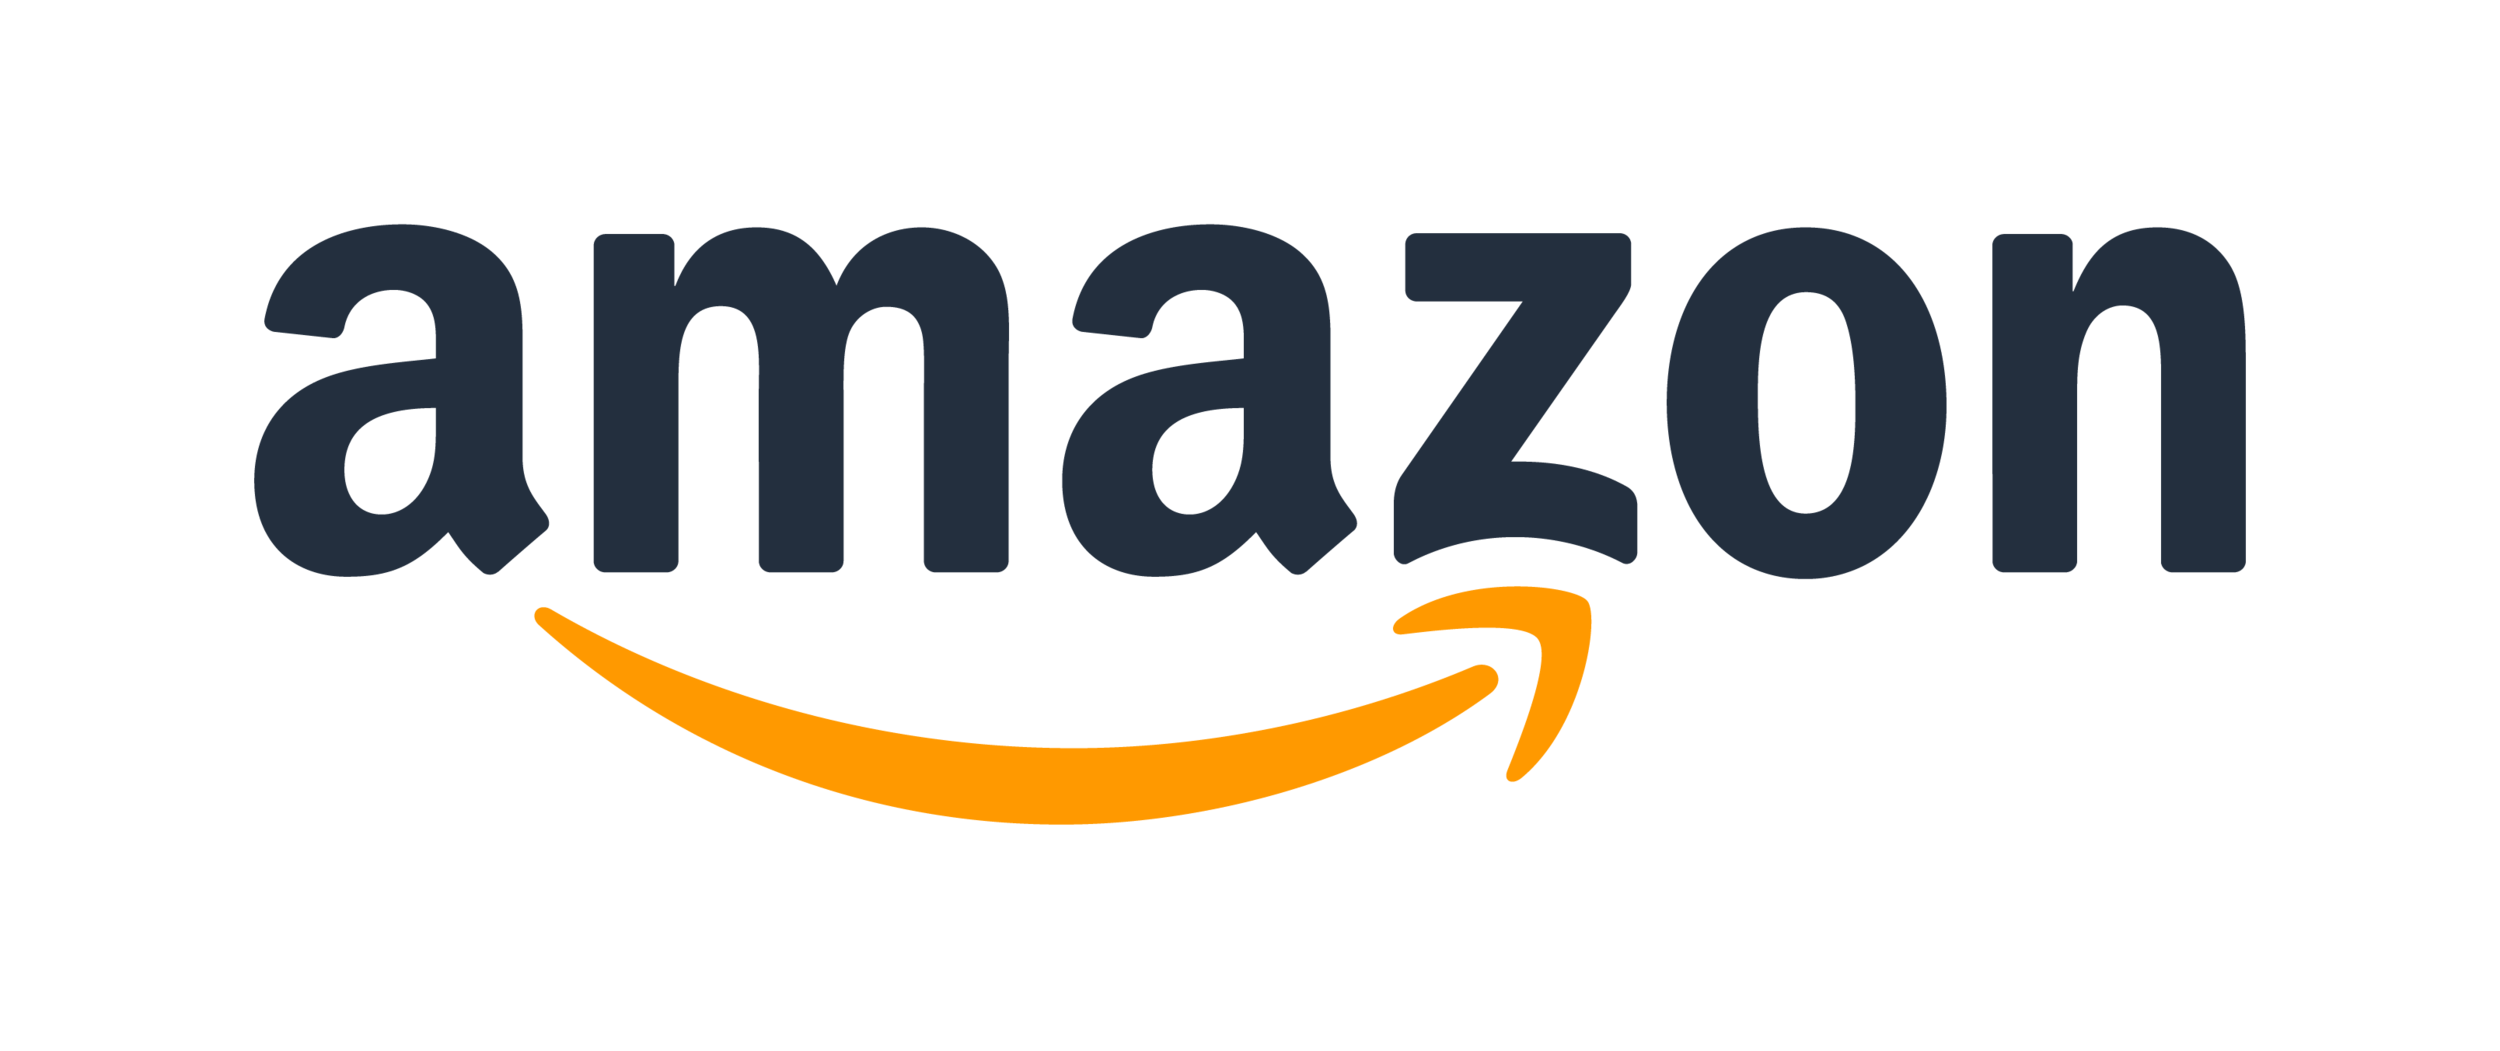 Amazon Wishlist - We've put together a Wishlist on Amazon.it so that our supporters all around the world can easily purchase items that will help us achieve our goals and send them to us directly in Sicily without any high shipping fees. We will also gladly accept in-kind donations of any used or similar items to what you see on the list.Click below to shop & support!